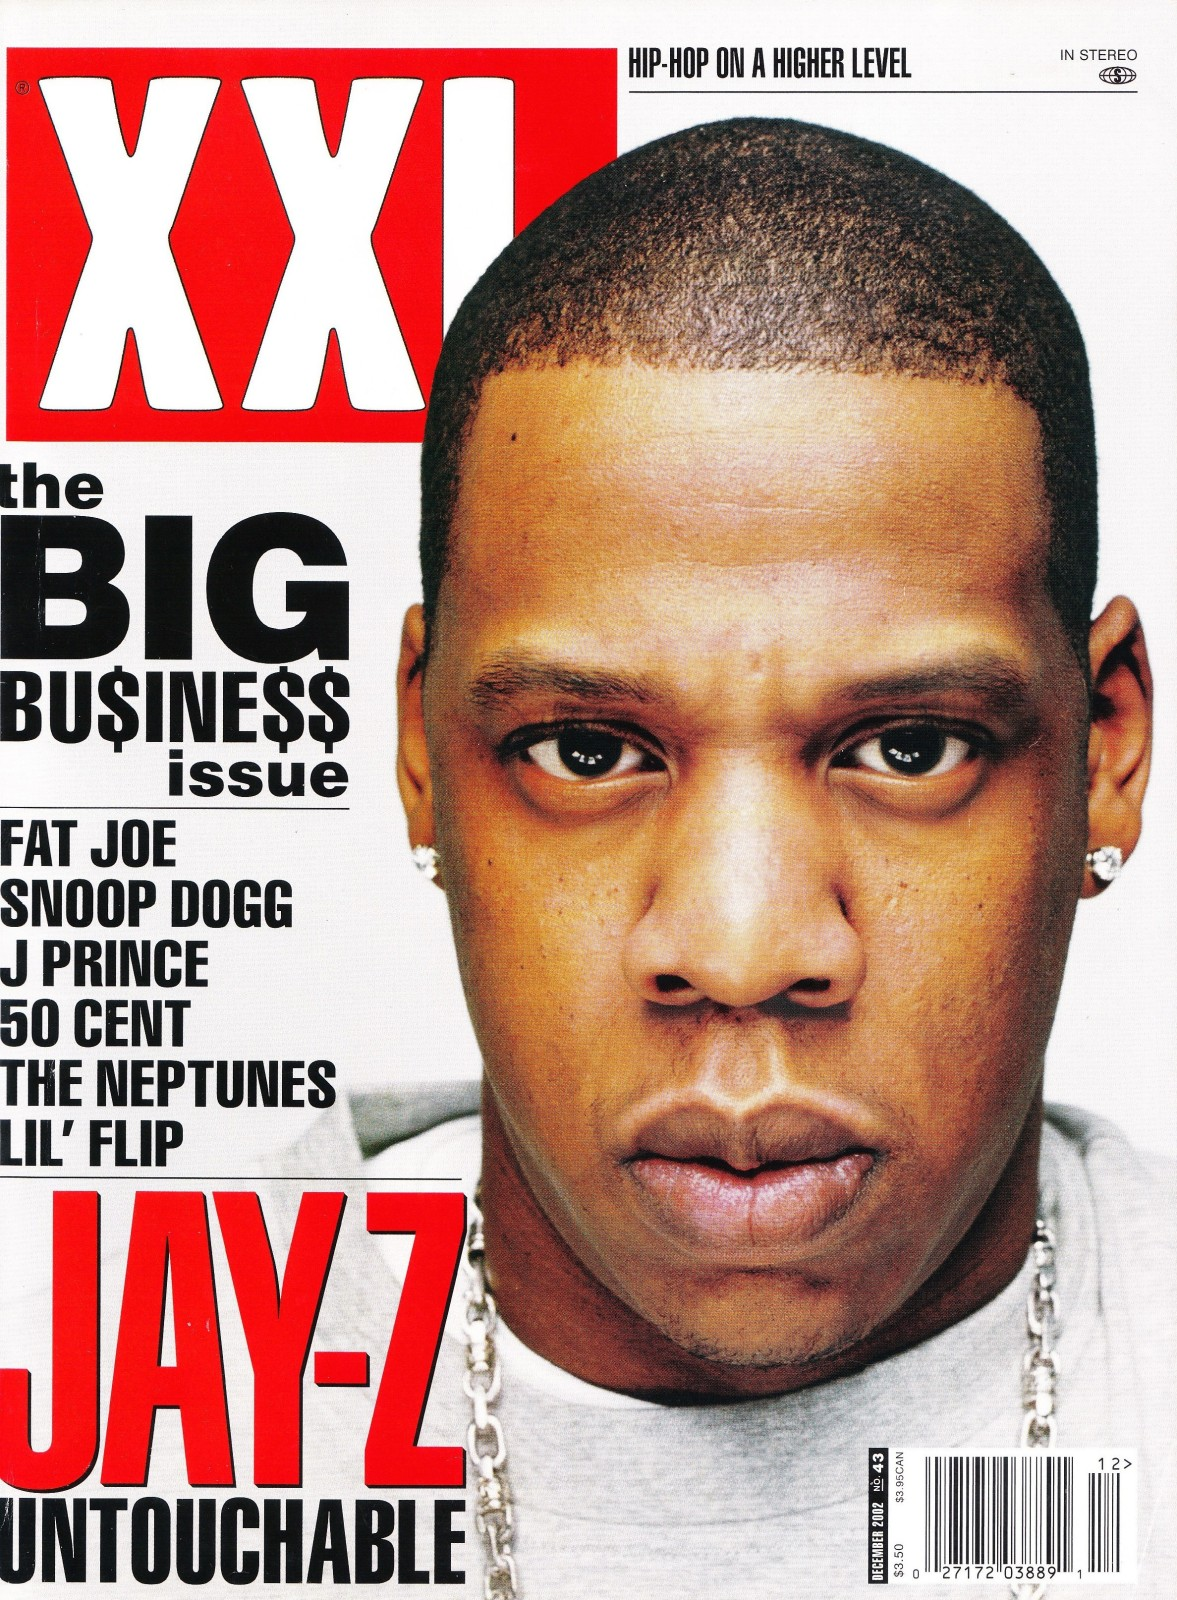 Dar hip hop jay zs the blueprint 2 the gift the curse when 2002 began jay z was honestly dealing with the effects of a possible loss in the rap battle to nas granted the battle remains debatable to this day malvernweather Choice Image